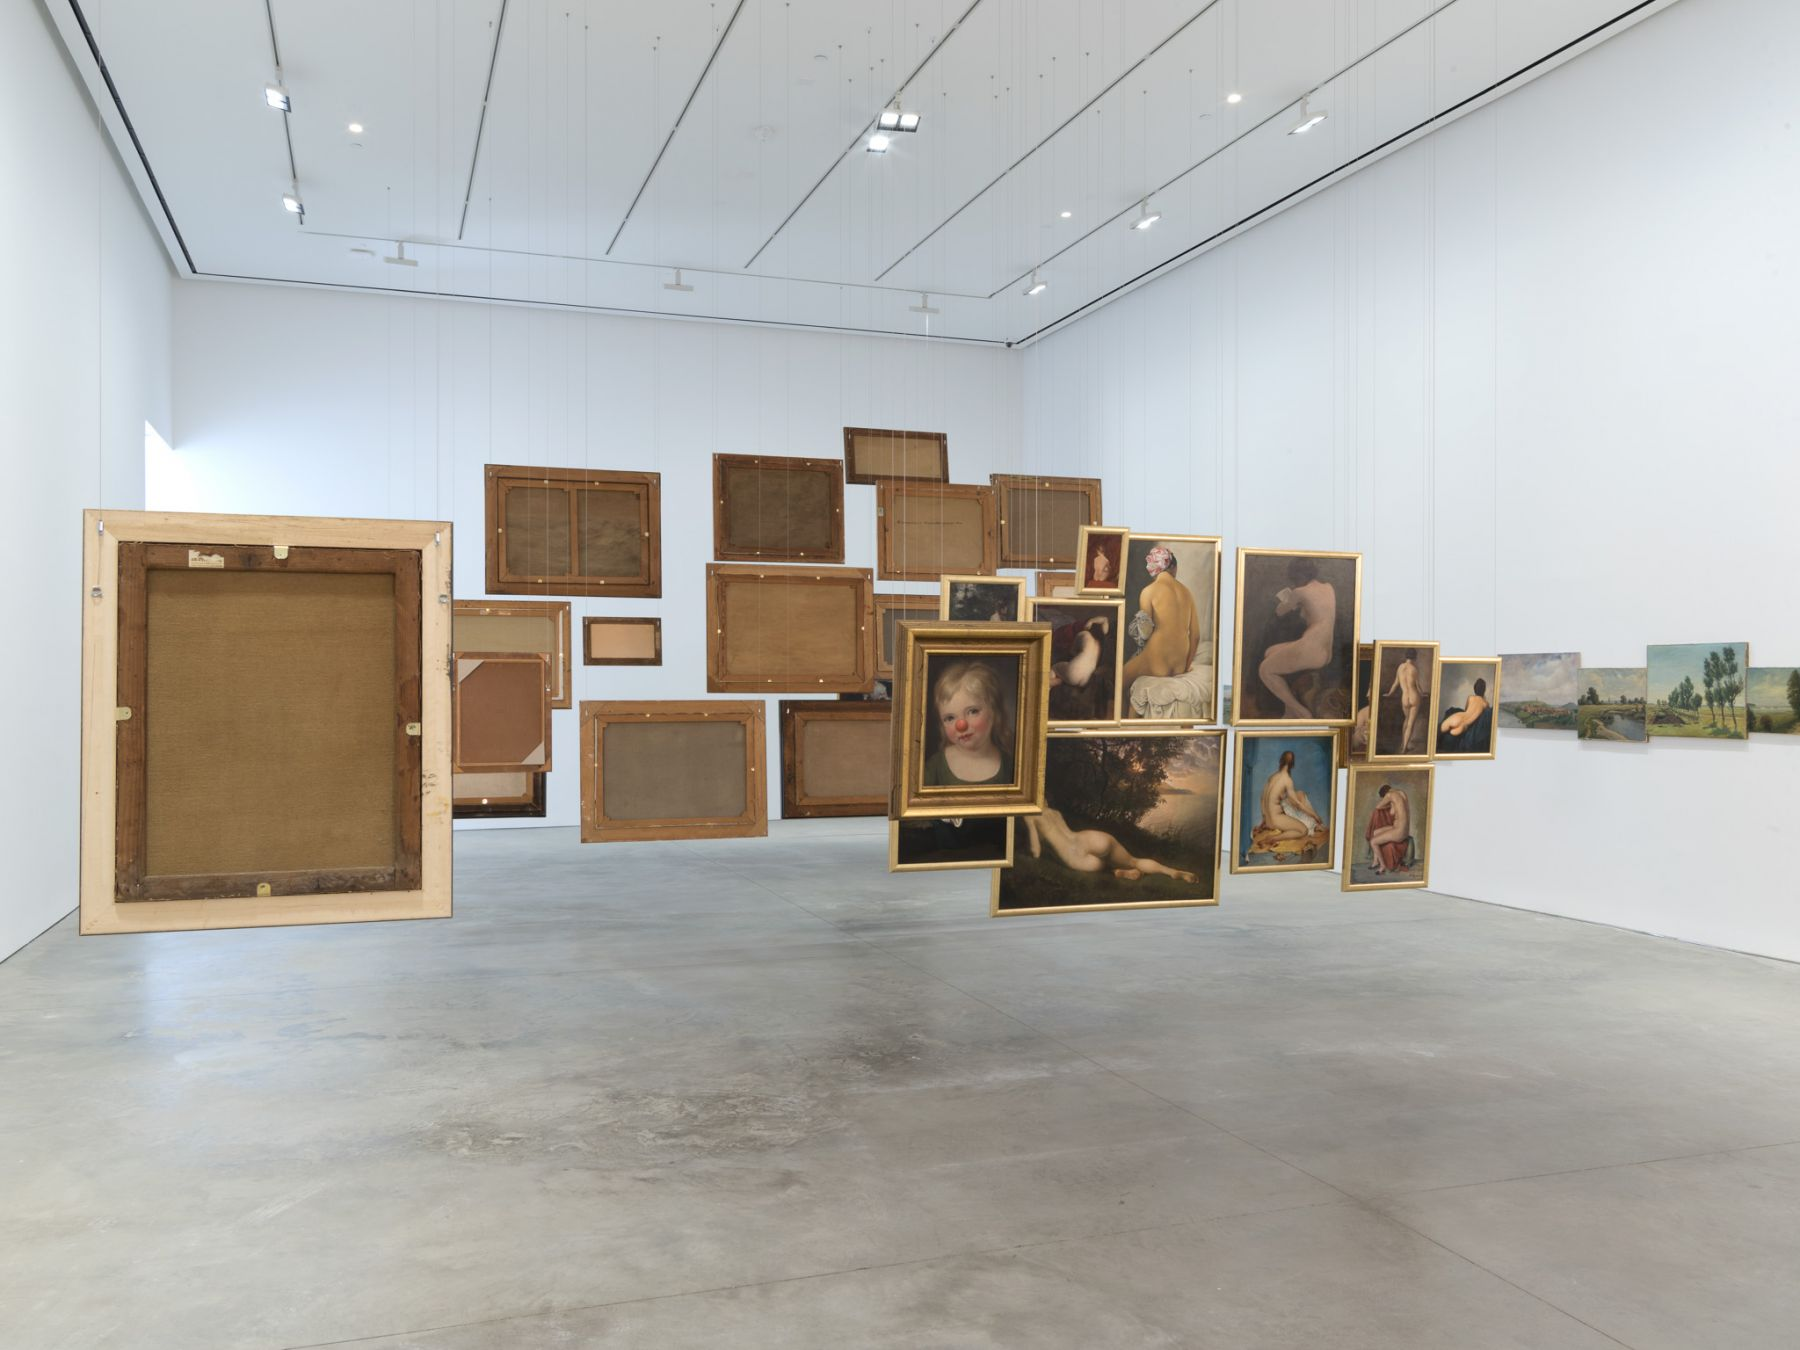 Hans-Peter Feldmann, Exhibition view: 303 Gallery, 2016